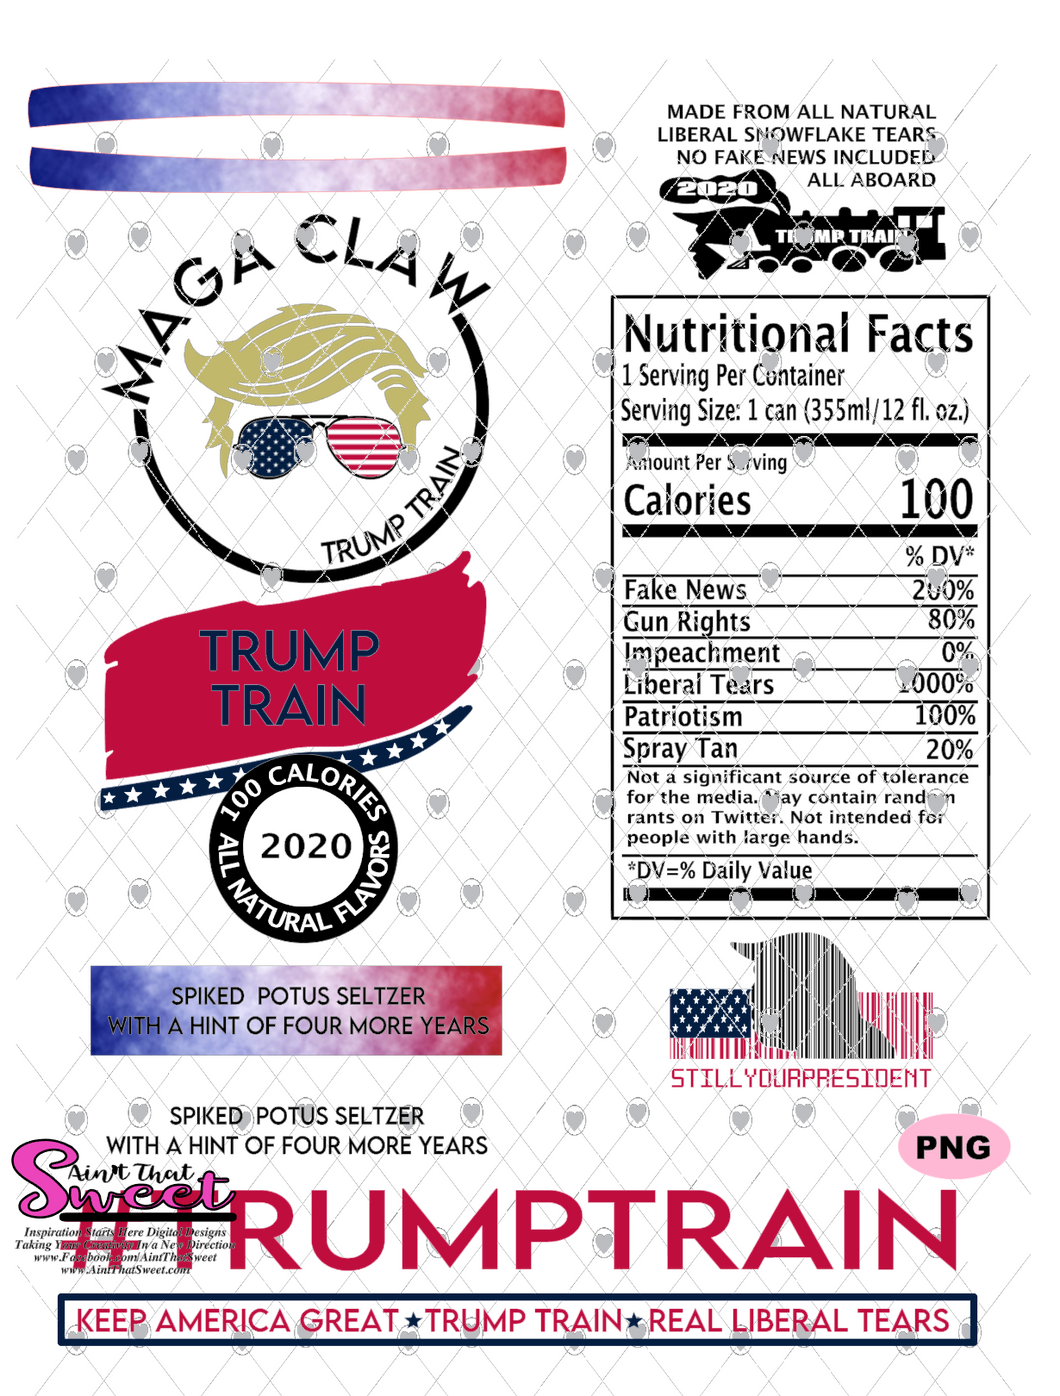 Trump Maga Claw-#TrumpTrain - PNG Only-Sublimation, Printing, Waterslide